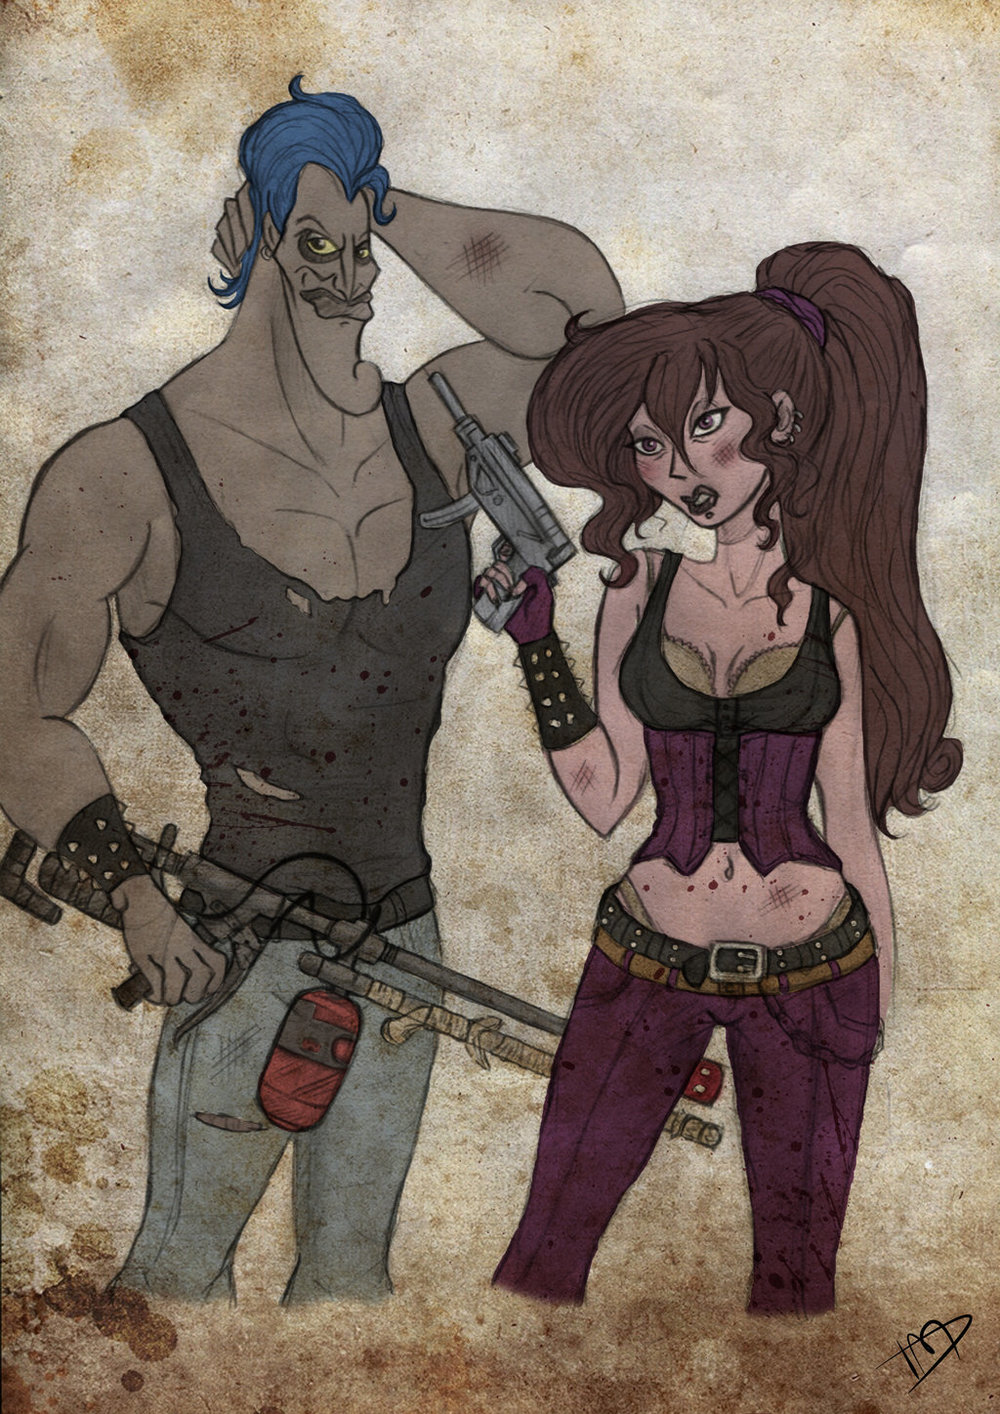 the_walking_disney___meg_and_hades_by_kasami_sensei-d79wpxu.jpg